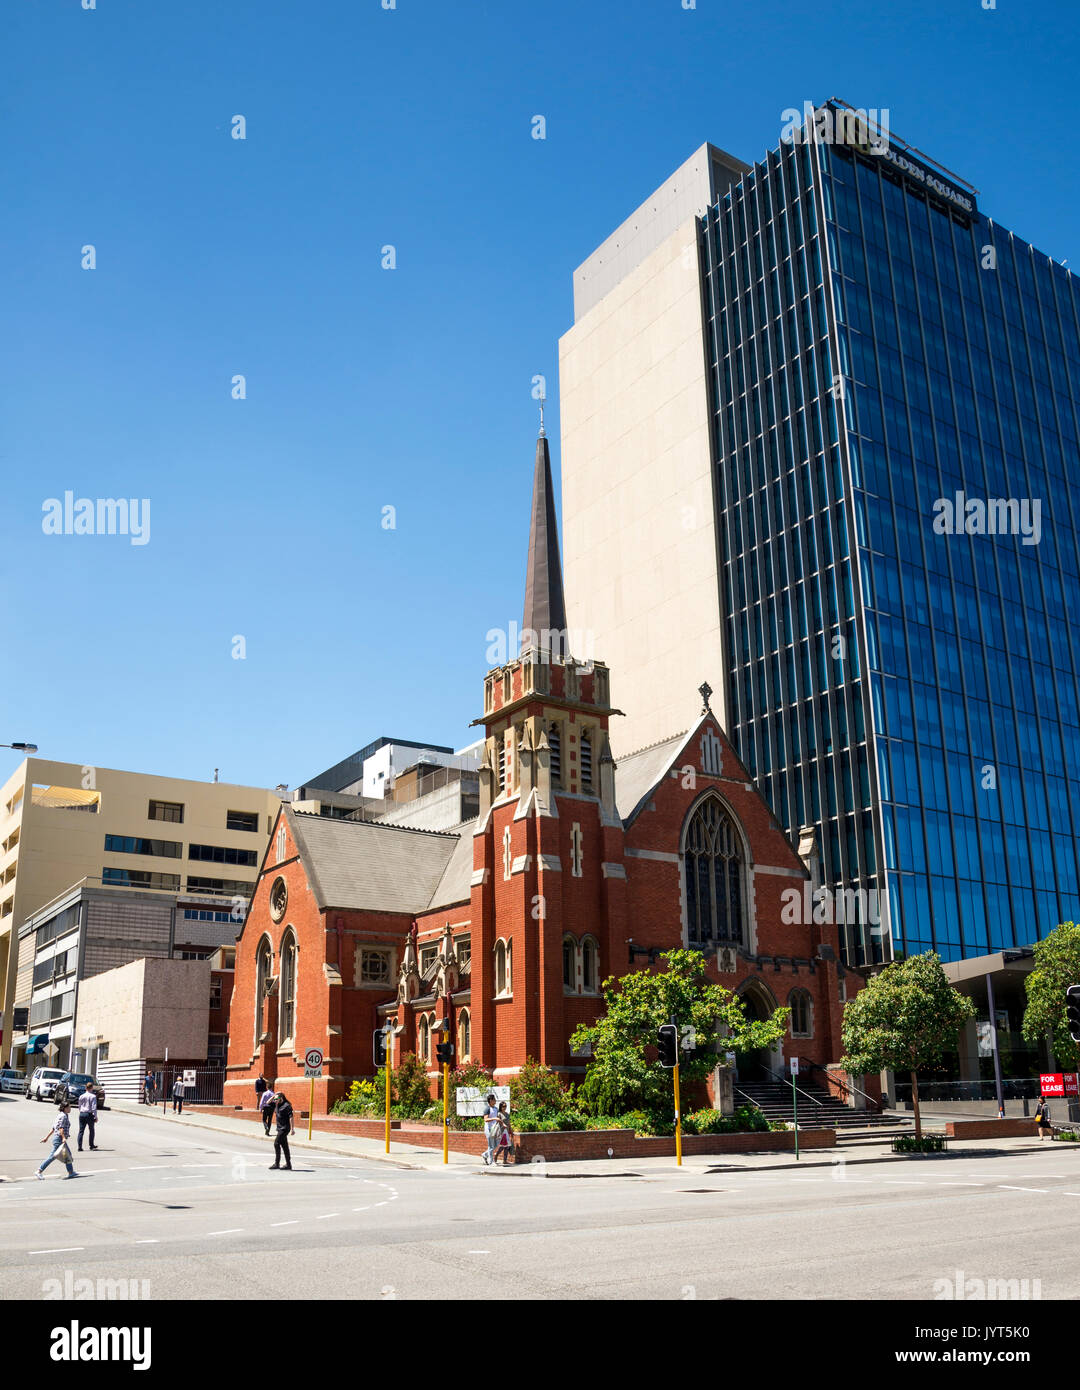 Wesley Uniting Church at corner of Hay Street and William Street in Perth City, Western Australia - Stock Image